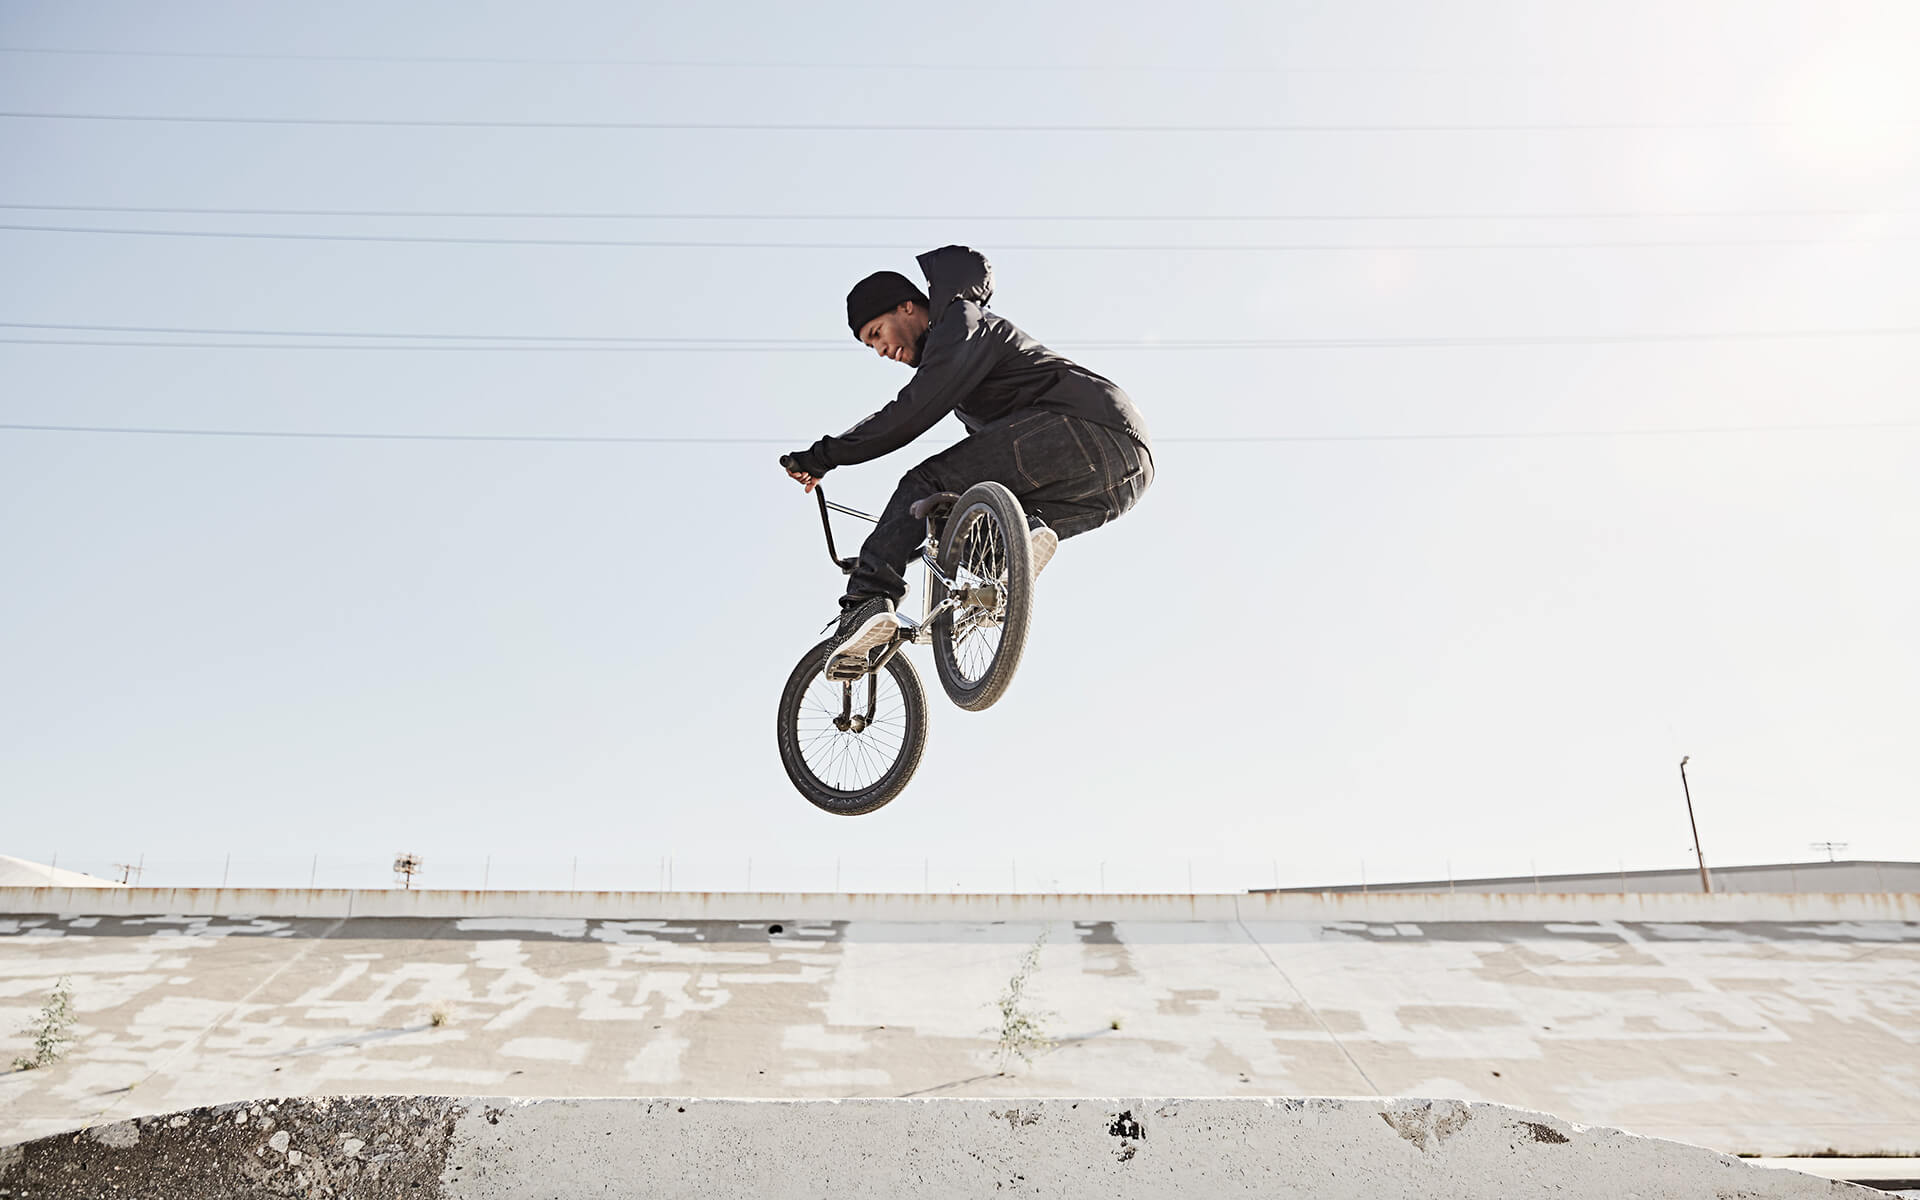 Unified Content, Unified Content Toronto, Aaron Cobb, Andrew Jackson, BMX, bicycle motocross, LA, Los Angeles, Los Angeles Athletes, Athletes, Biker, Jump, Athlete, sports photography, action shot,